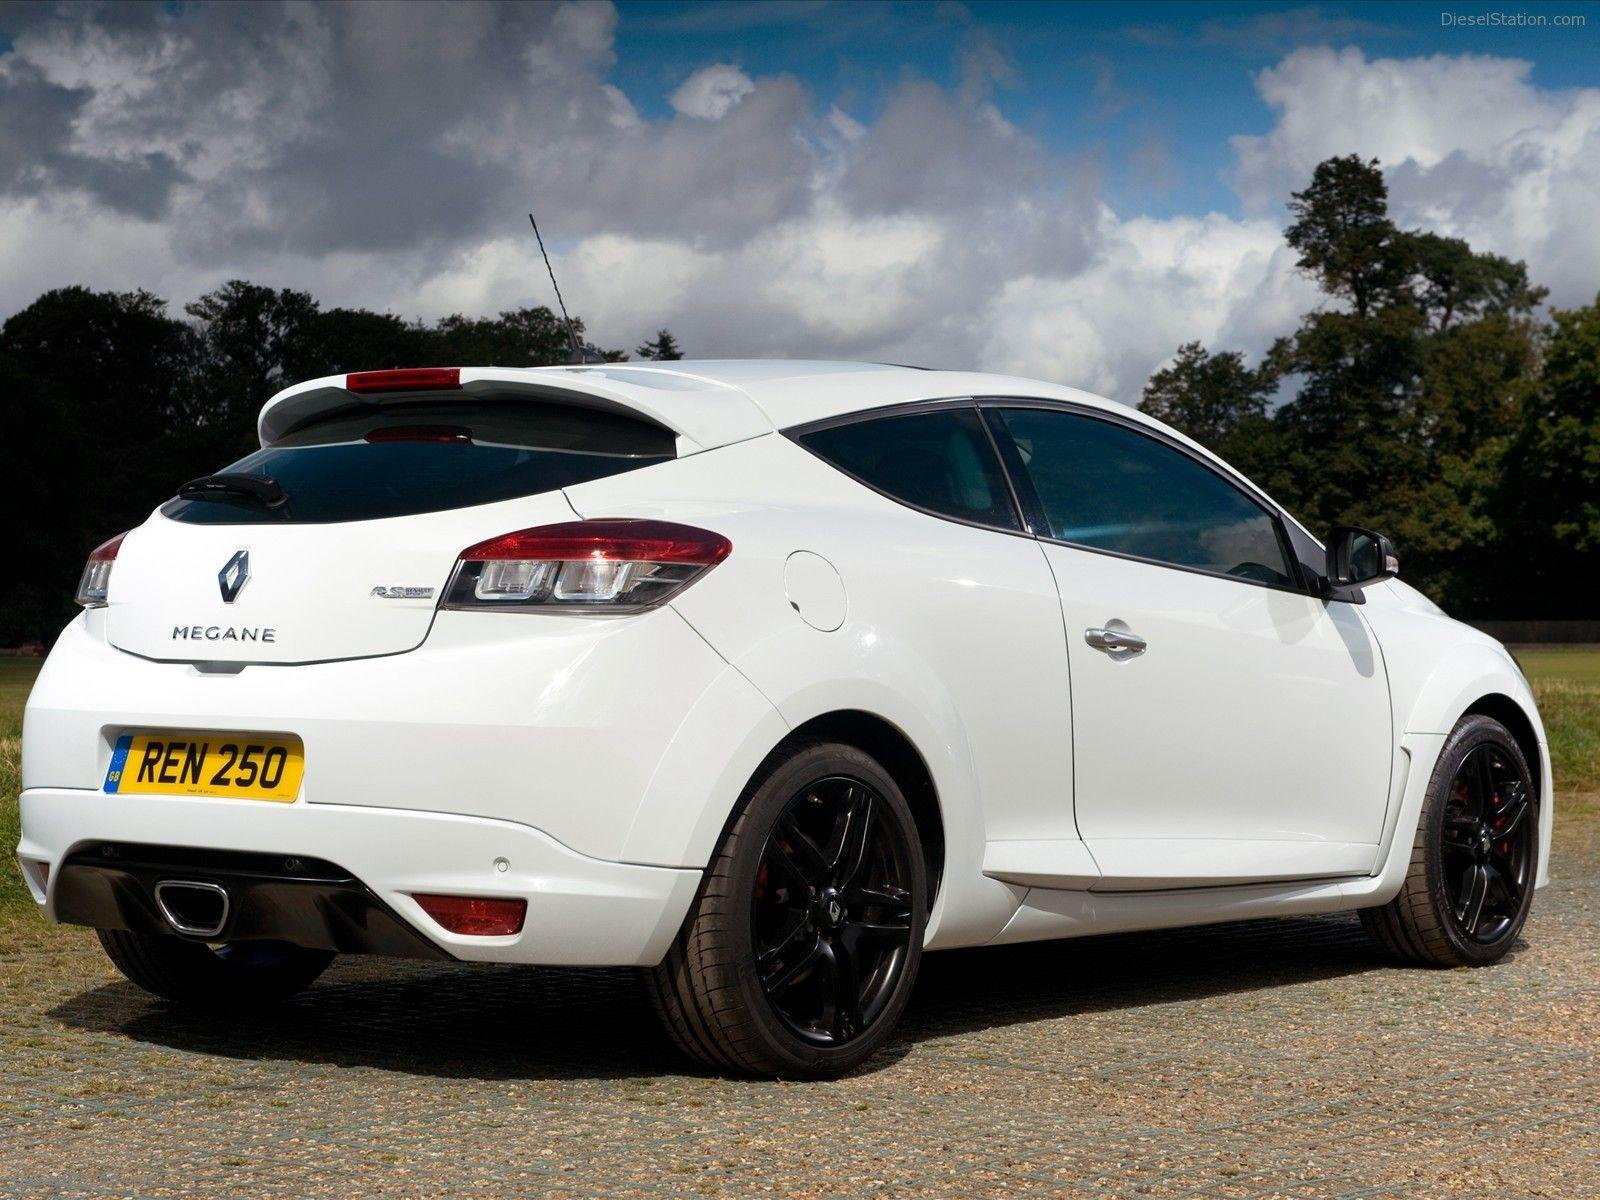 New Megane Renault Sport 250 Exotic Car Wallpapers of 10 : Diesel